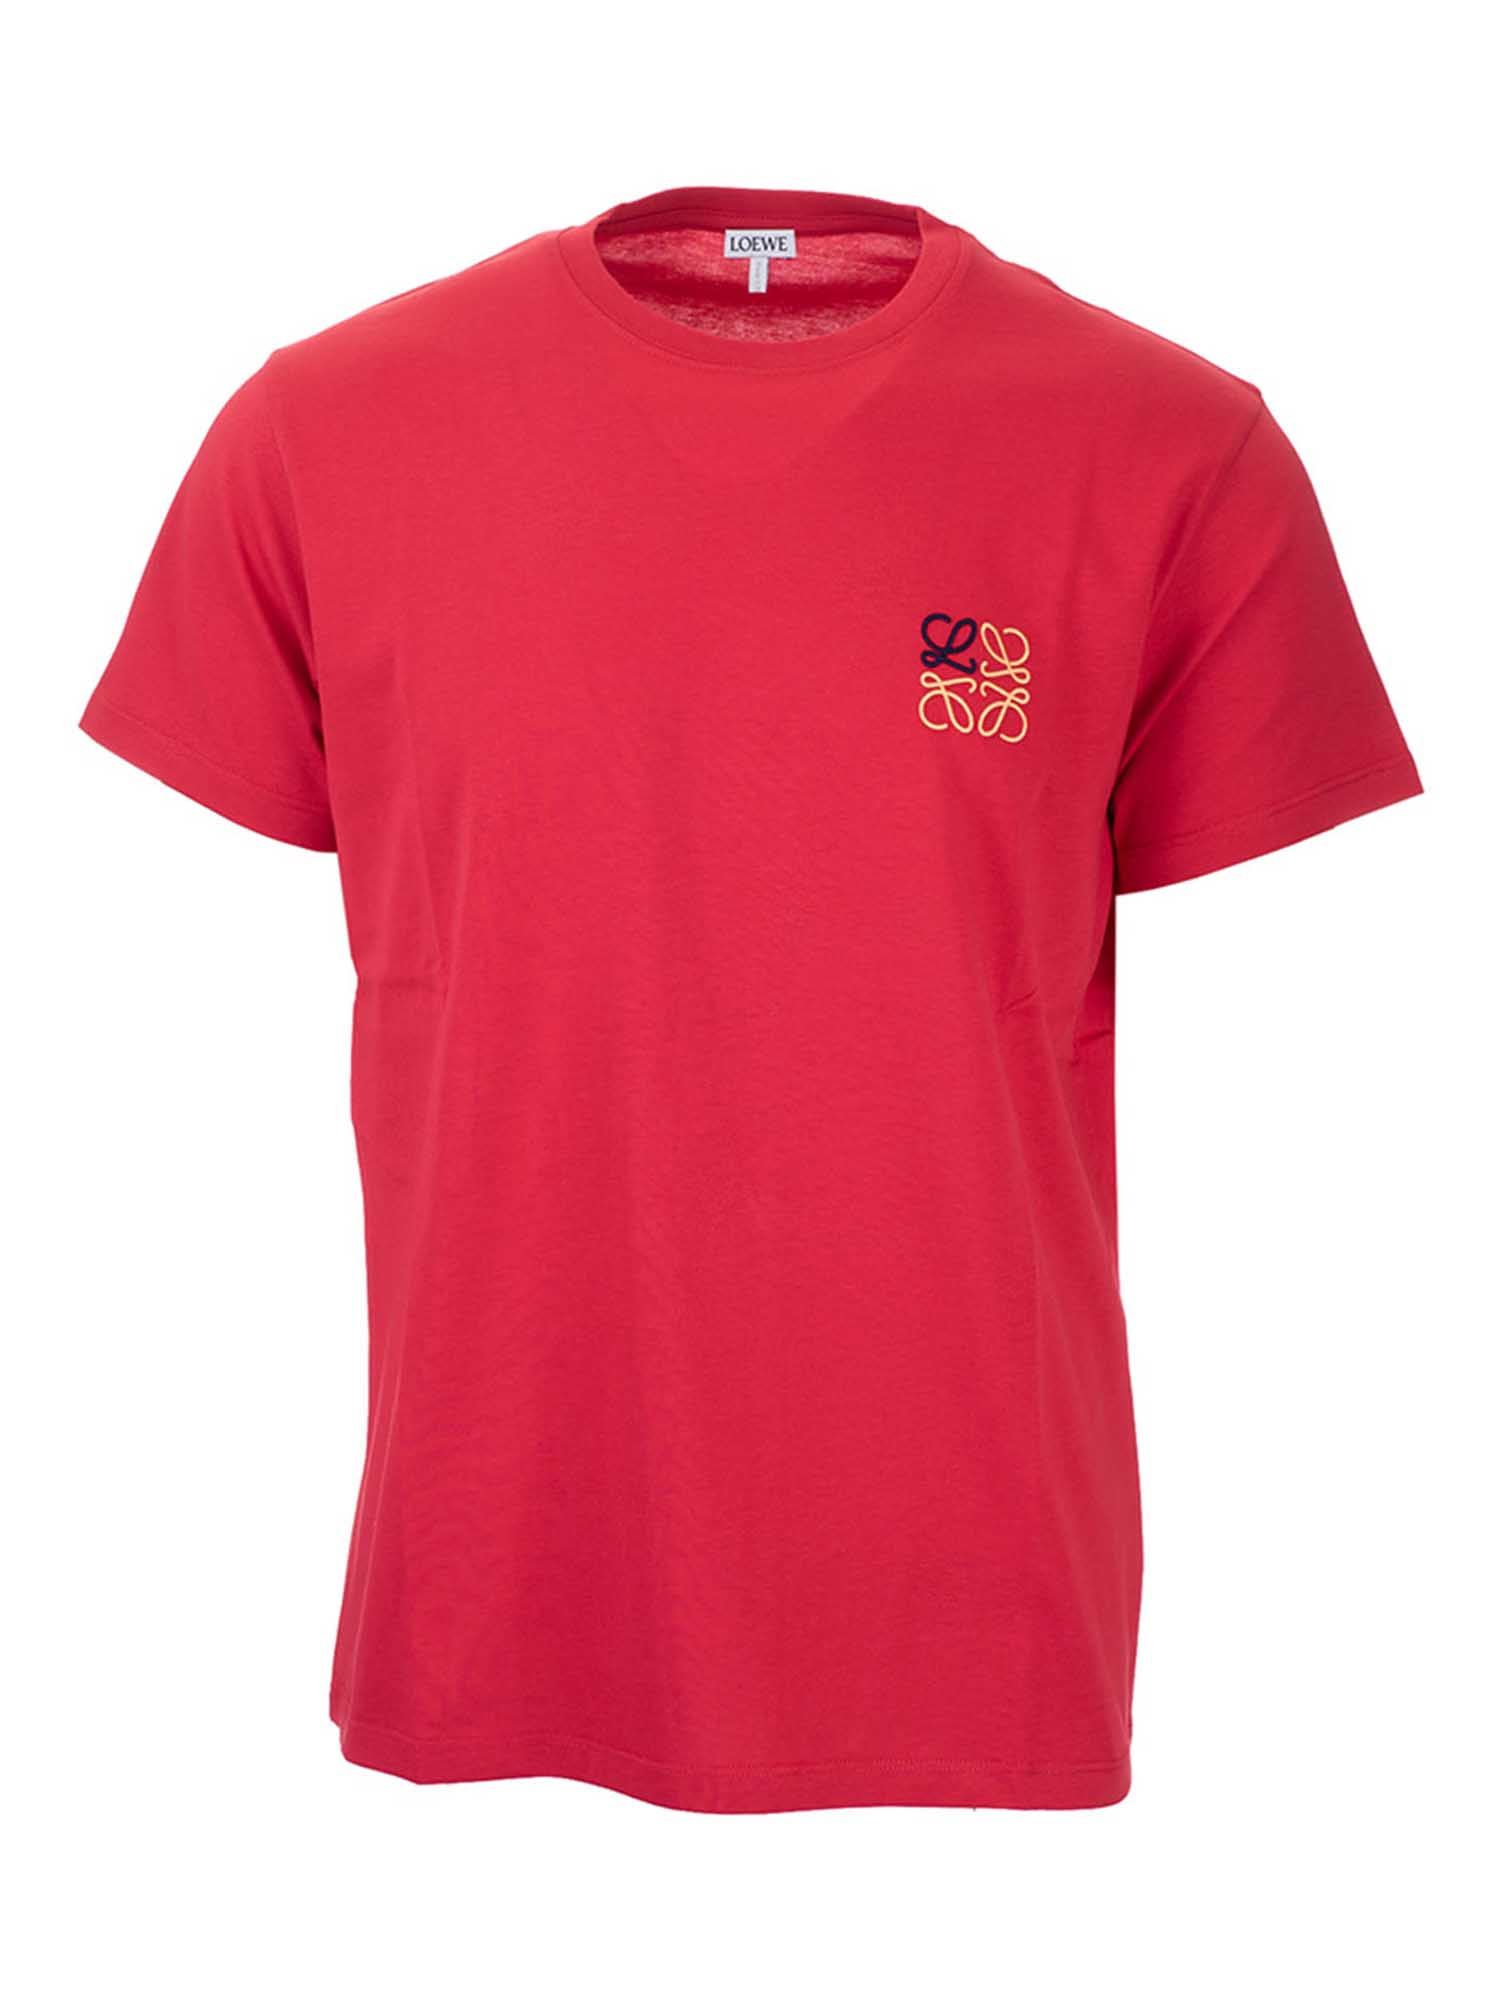 Loewe ANAGRAM LOGO T-SHIRT IN RED